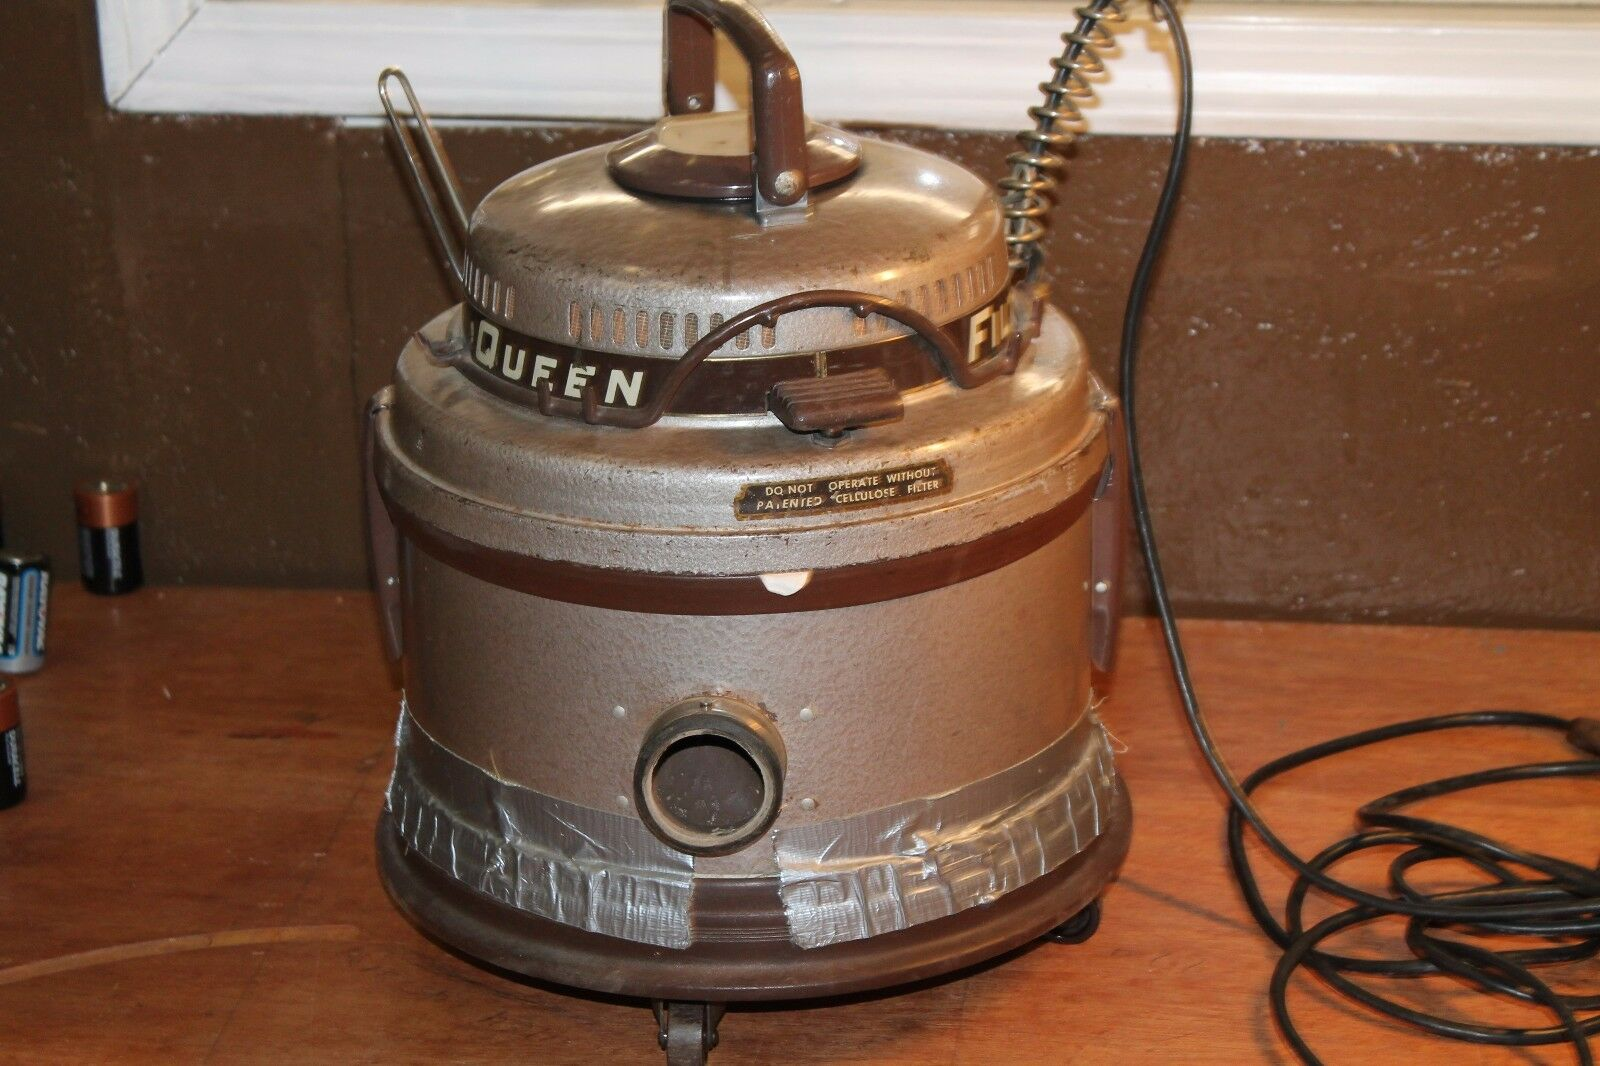 Antique VTG Filter Queen Canister Vacuum Cleaner - Motor Unit only w  dolly